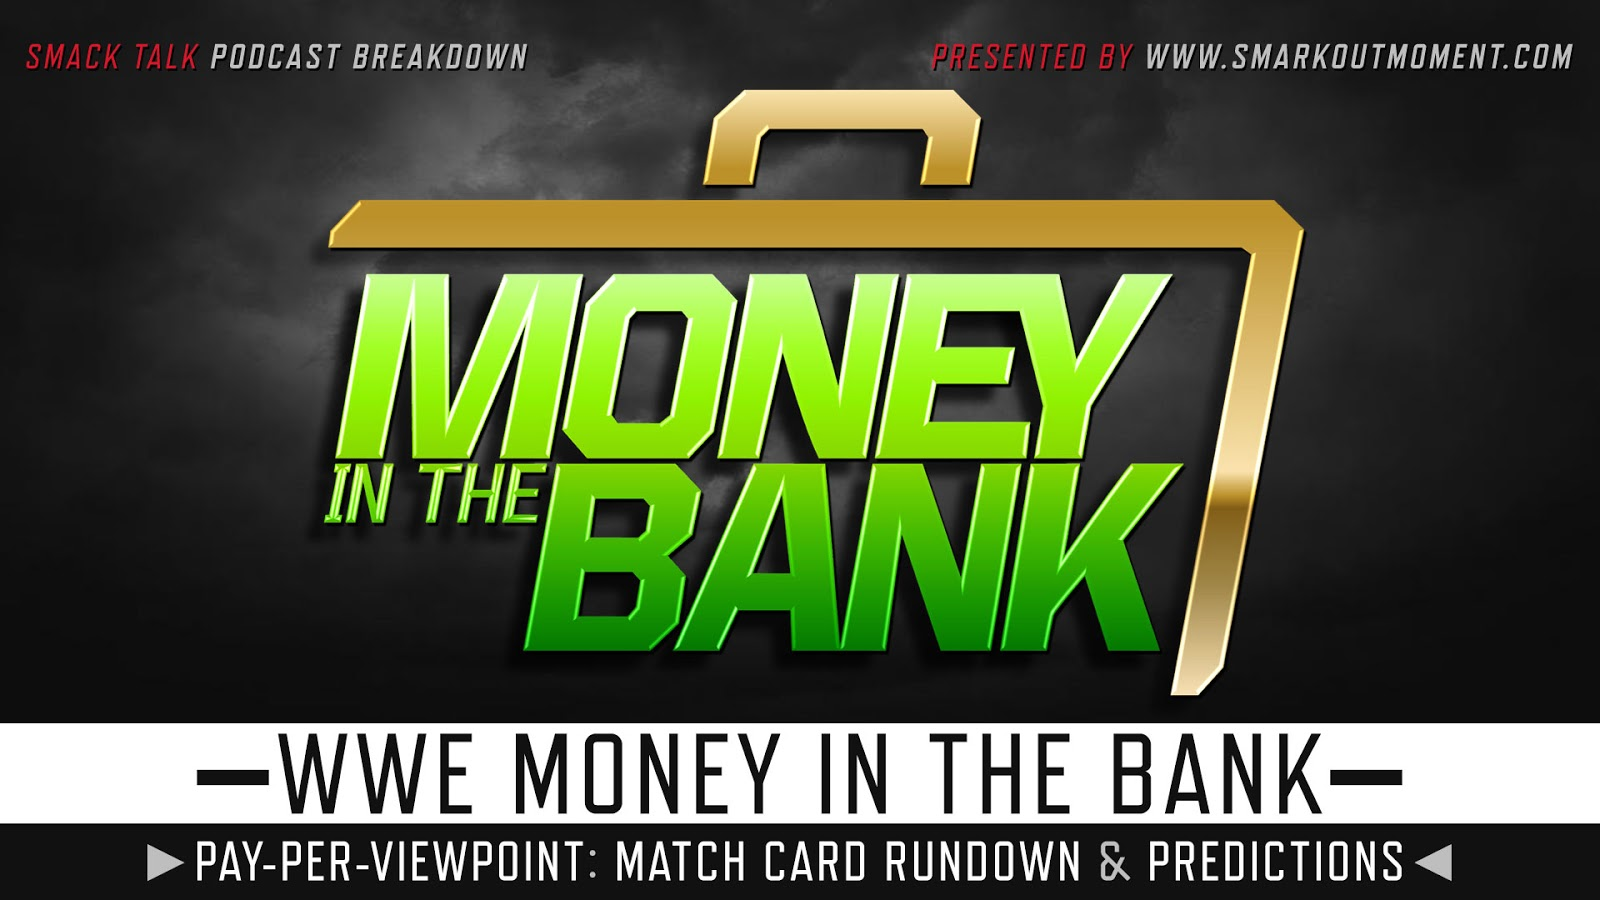 WWE Money in the Bank 2018 spoilers podcast